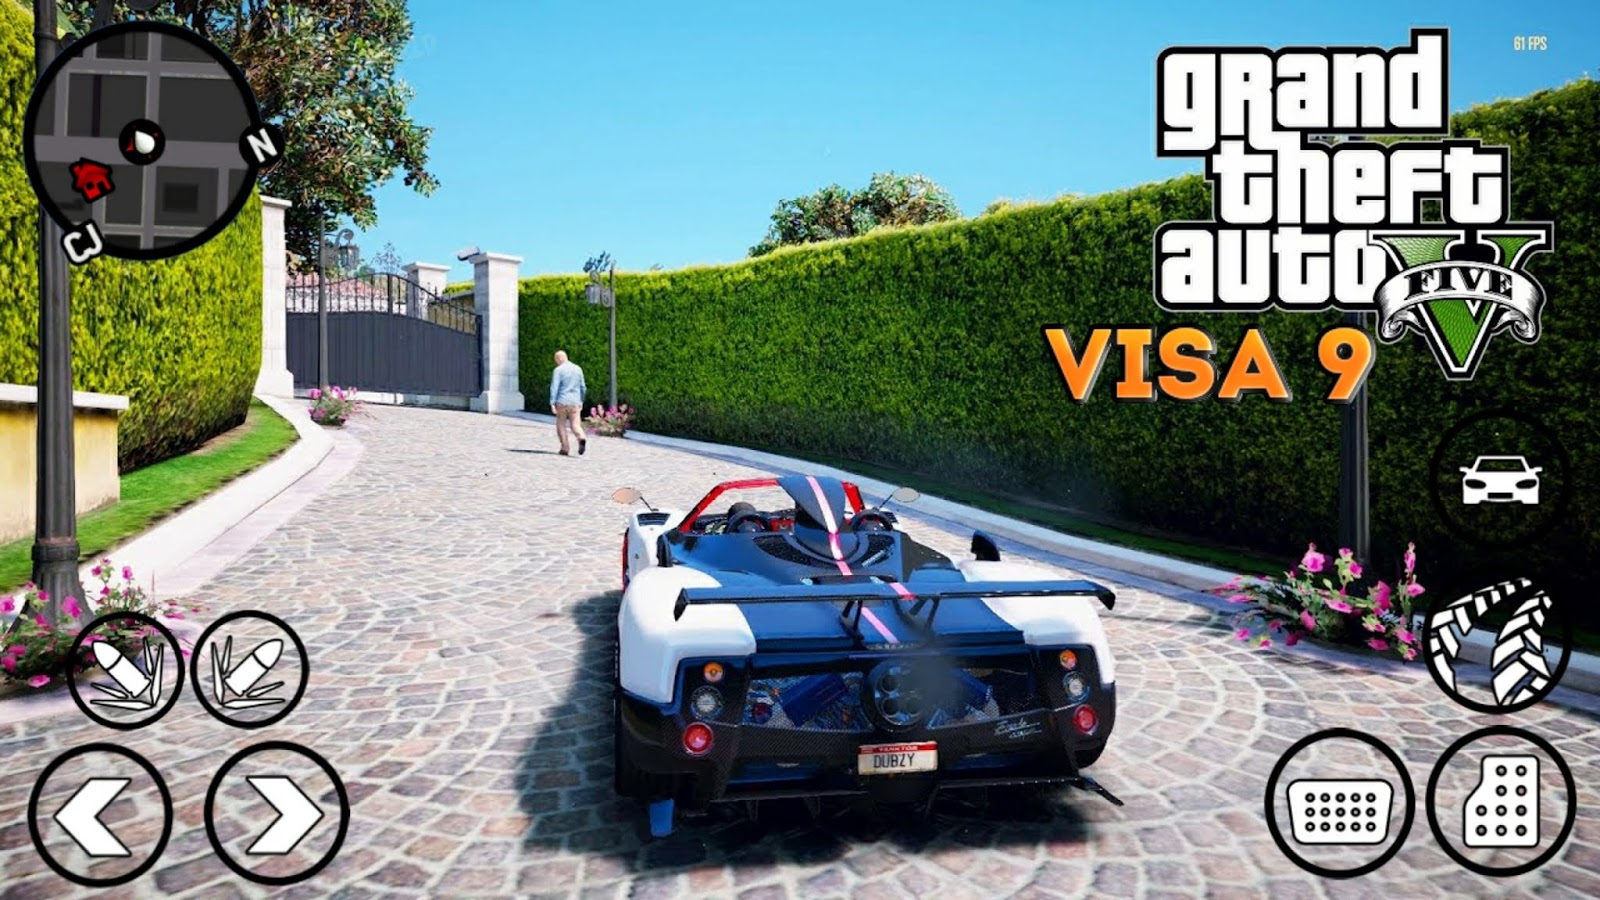 GTA V VISA 9 GRAPHICS MOD | WOW ! GTA 5 FULL MOD | GTA SA